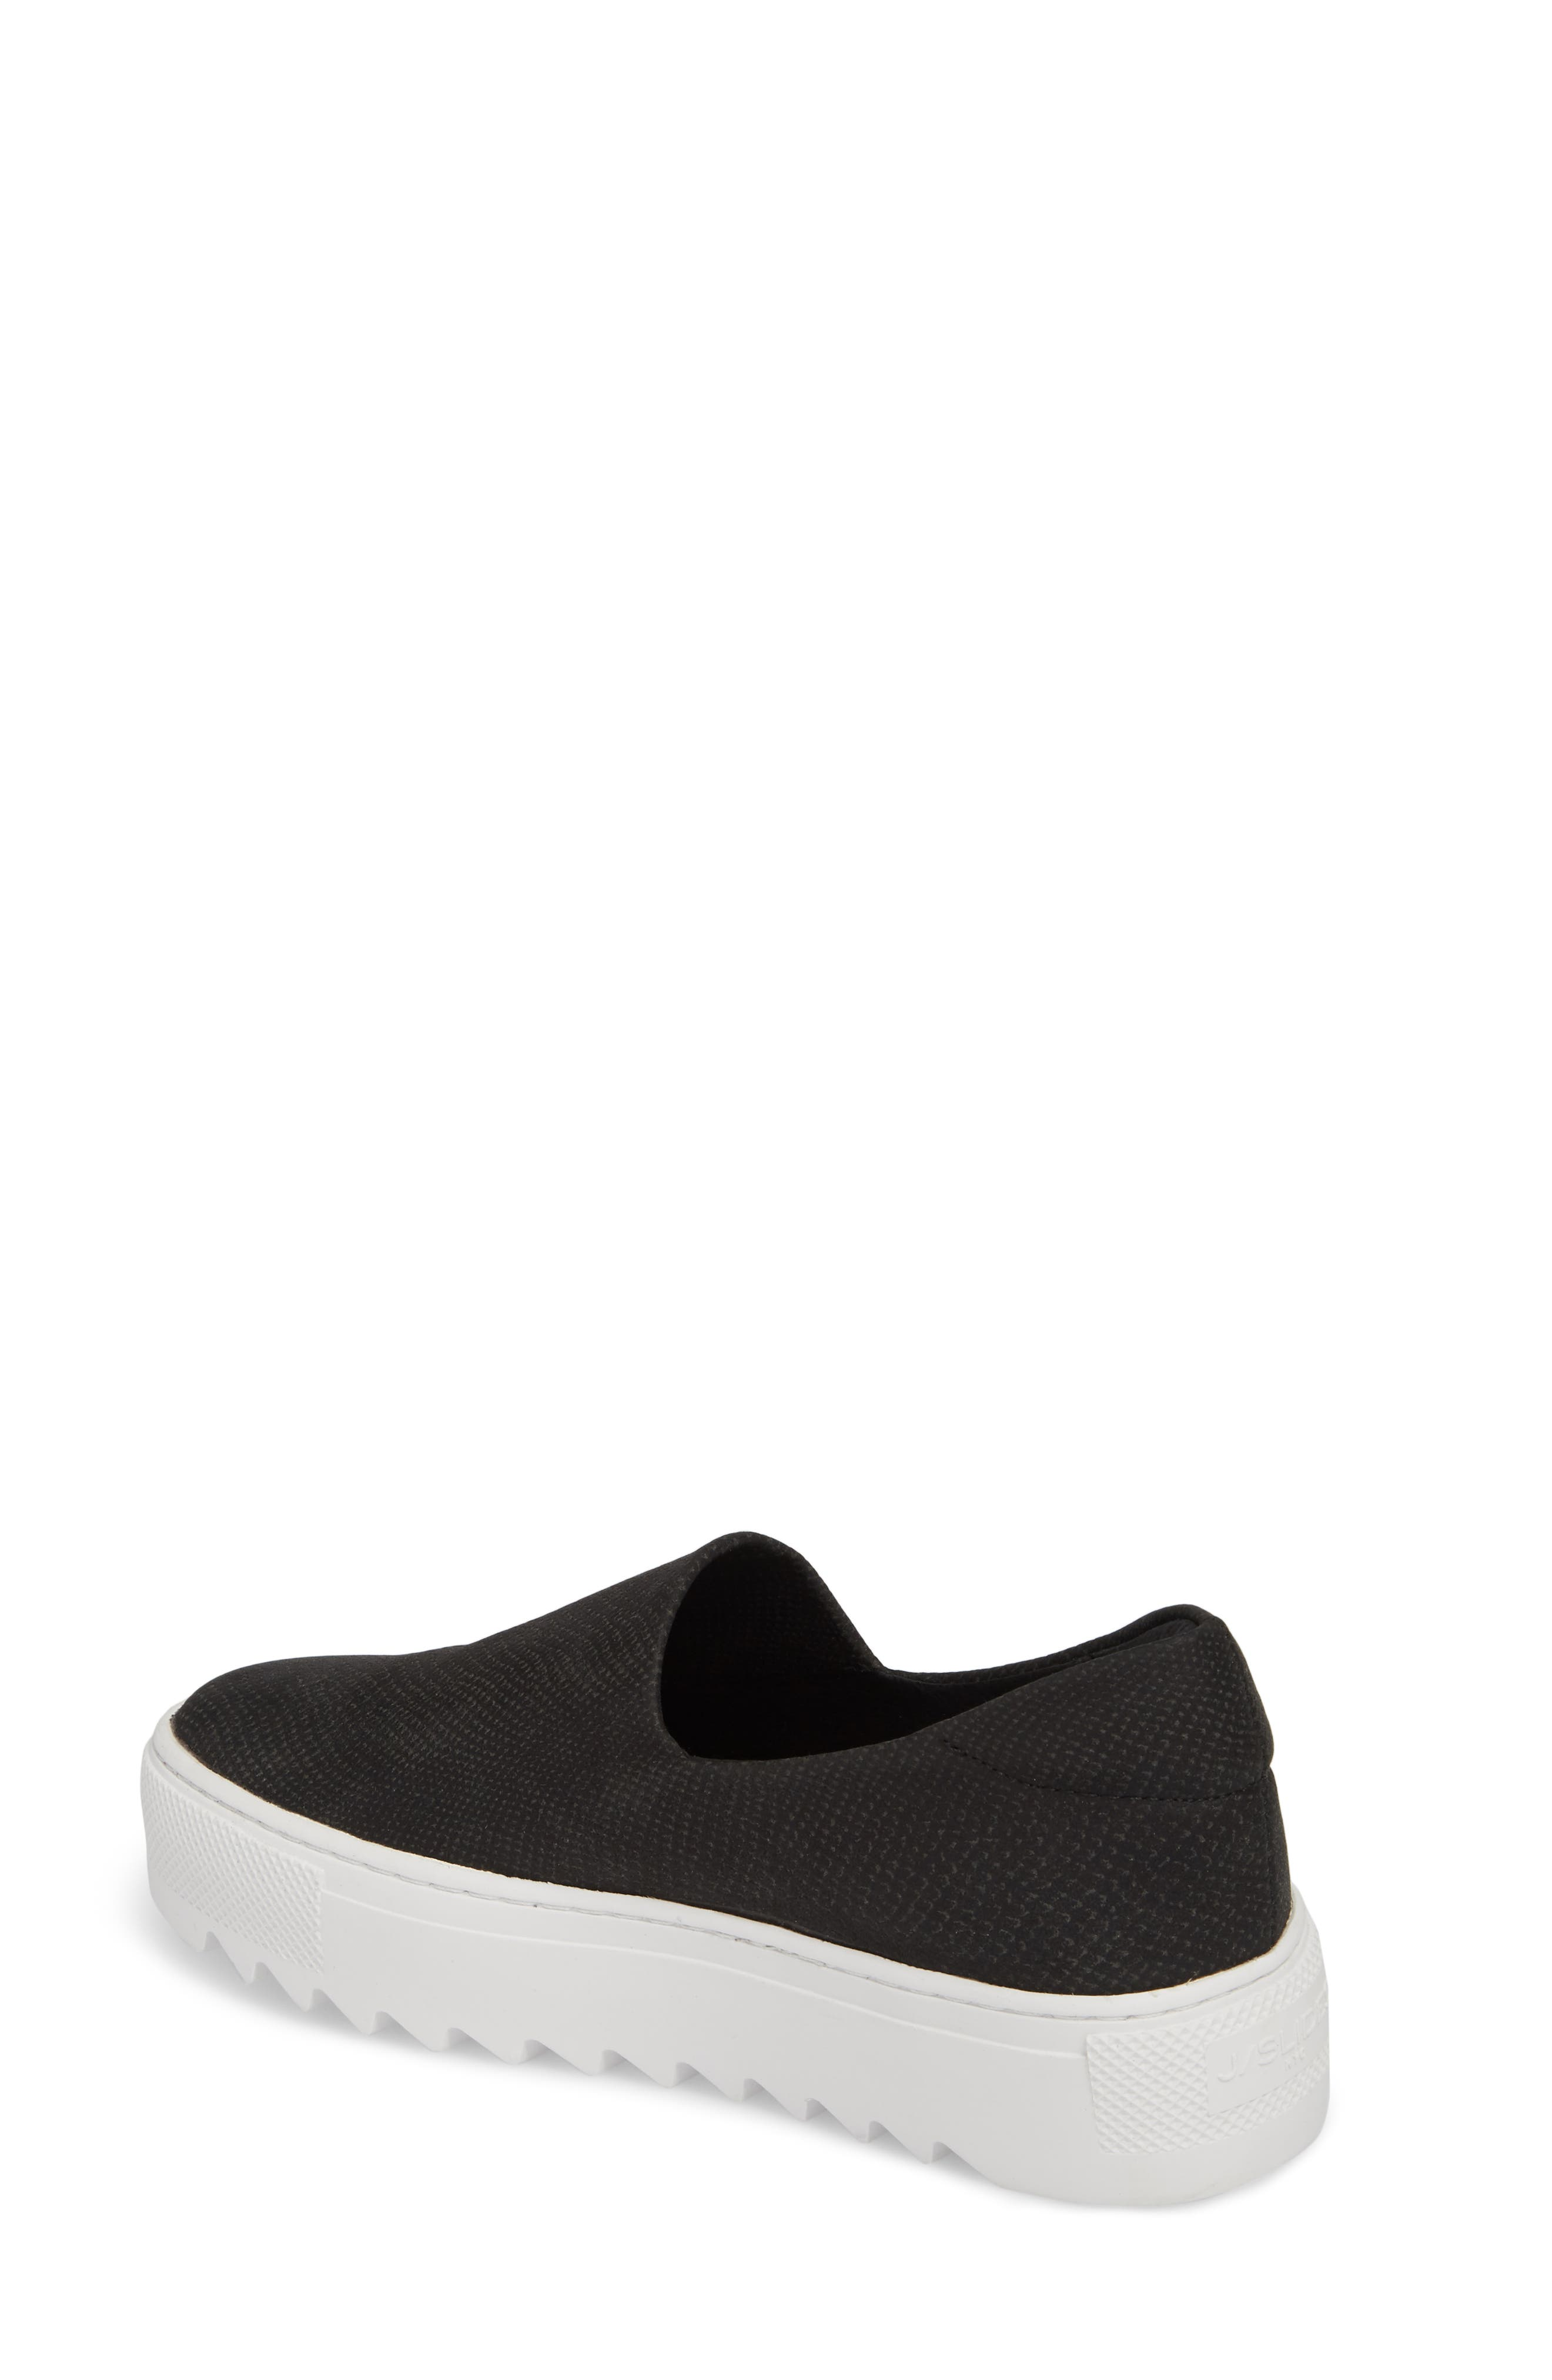 Sage Platform Slip-On Sneaker,                             Alternate thumbnail 2, color,                             BLACK MIX FABRIC